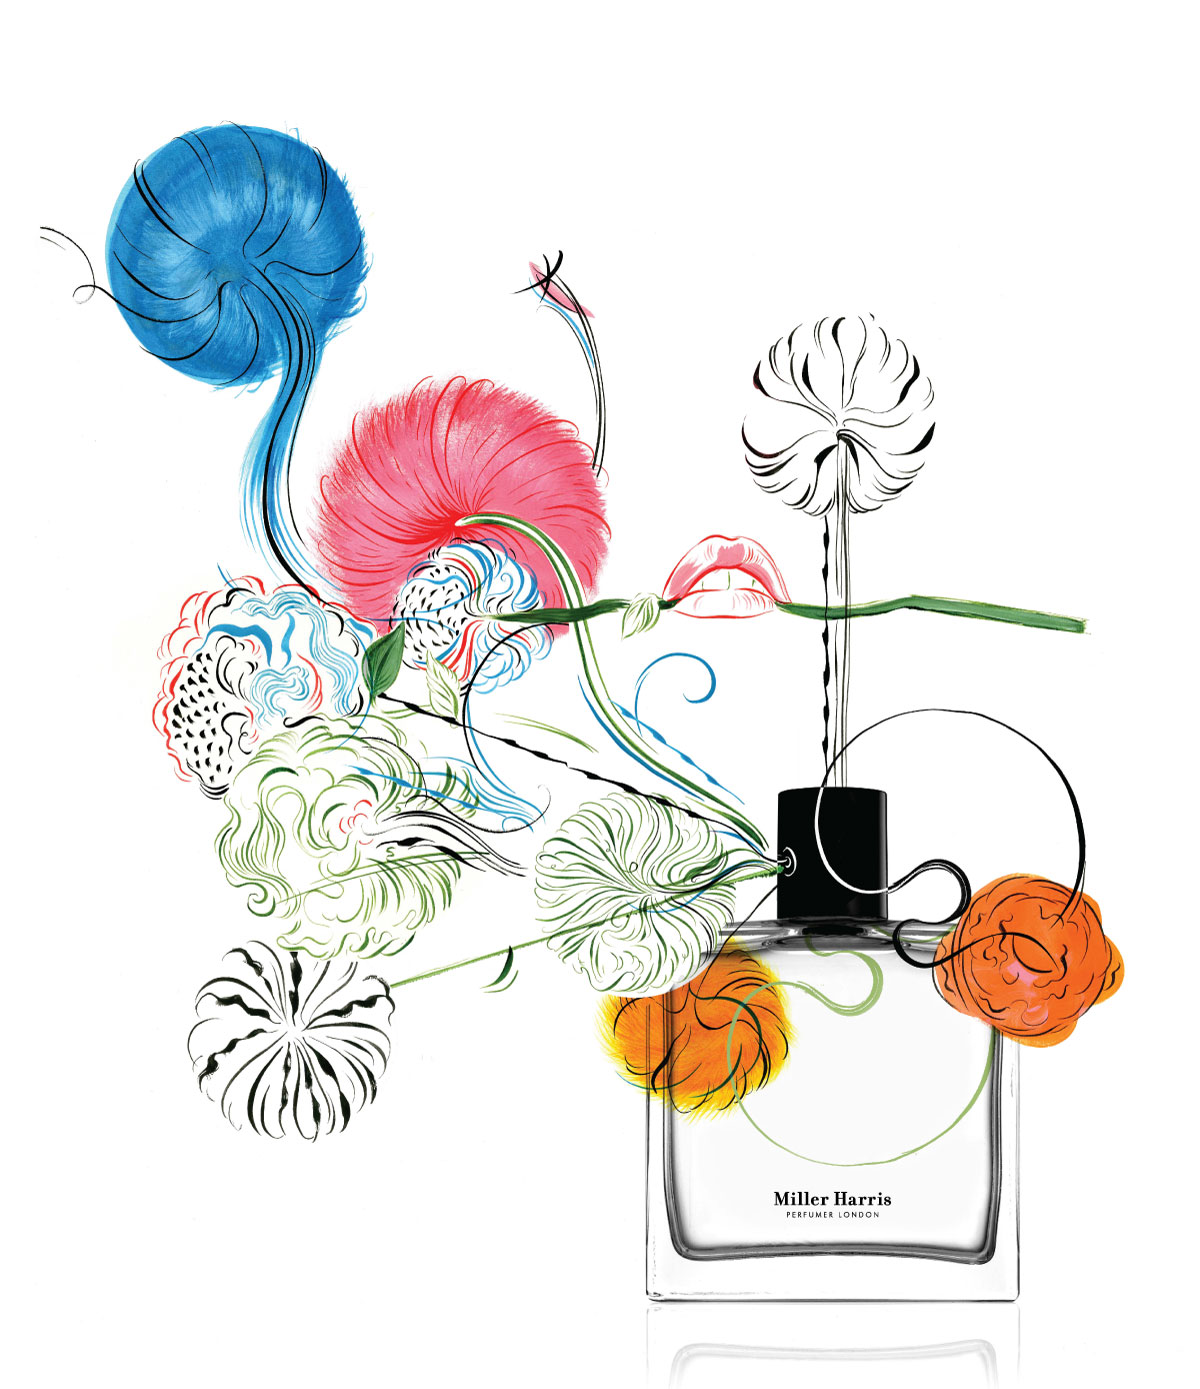 Miller Harris – Perfume Collection